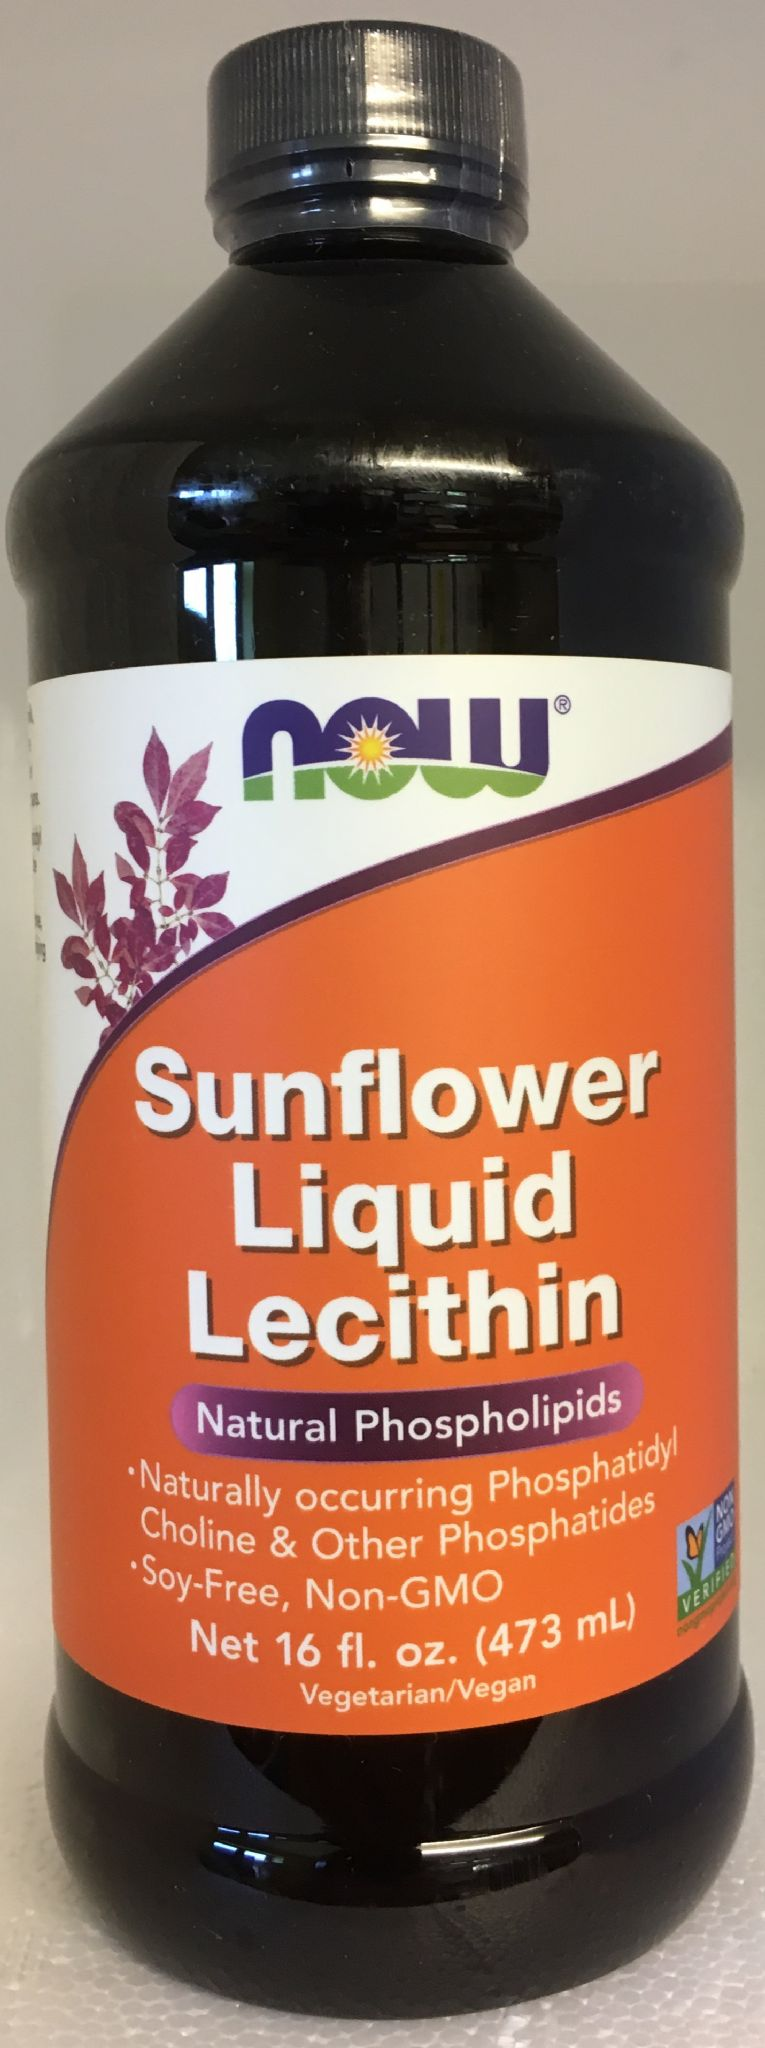 Liquid Sunflower Lecithin 16 fl.oz